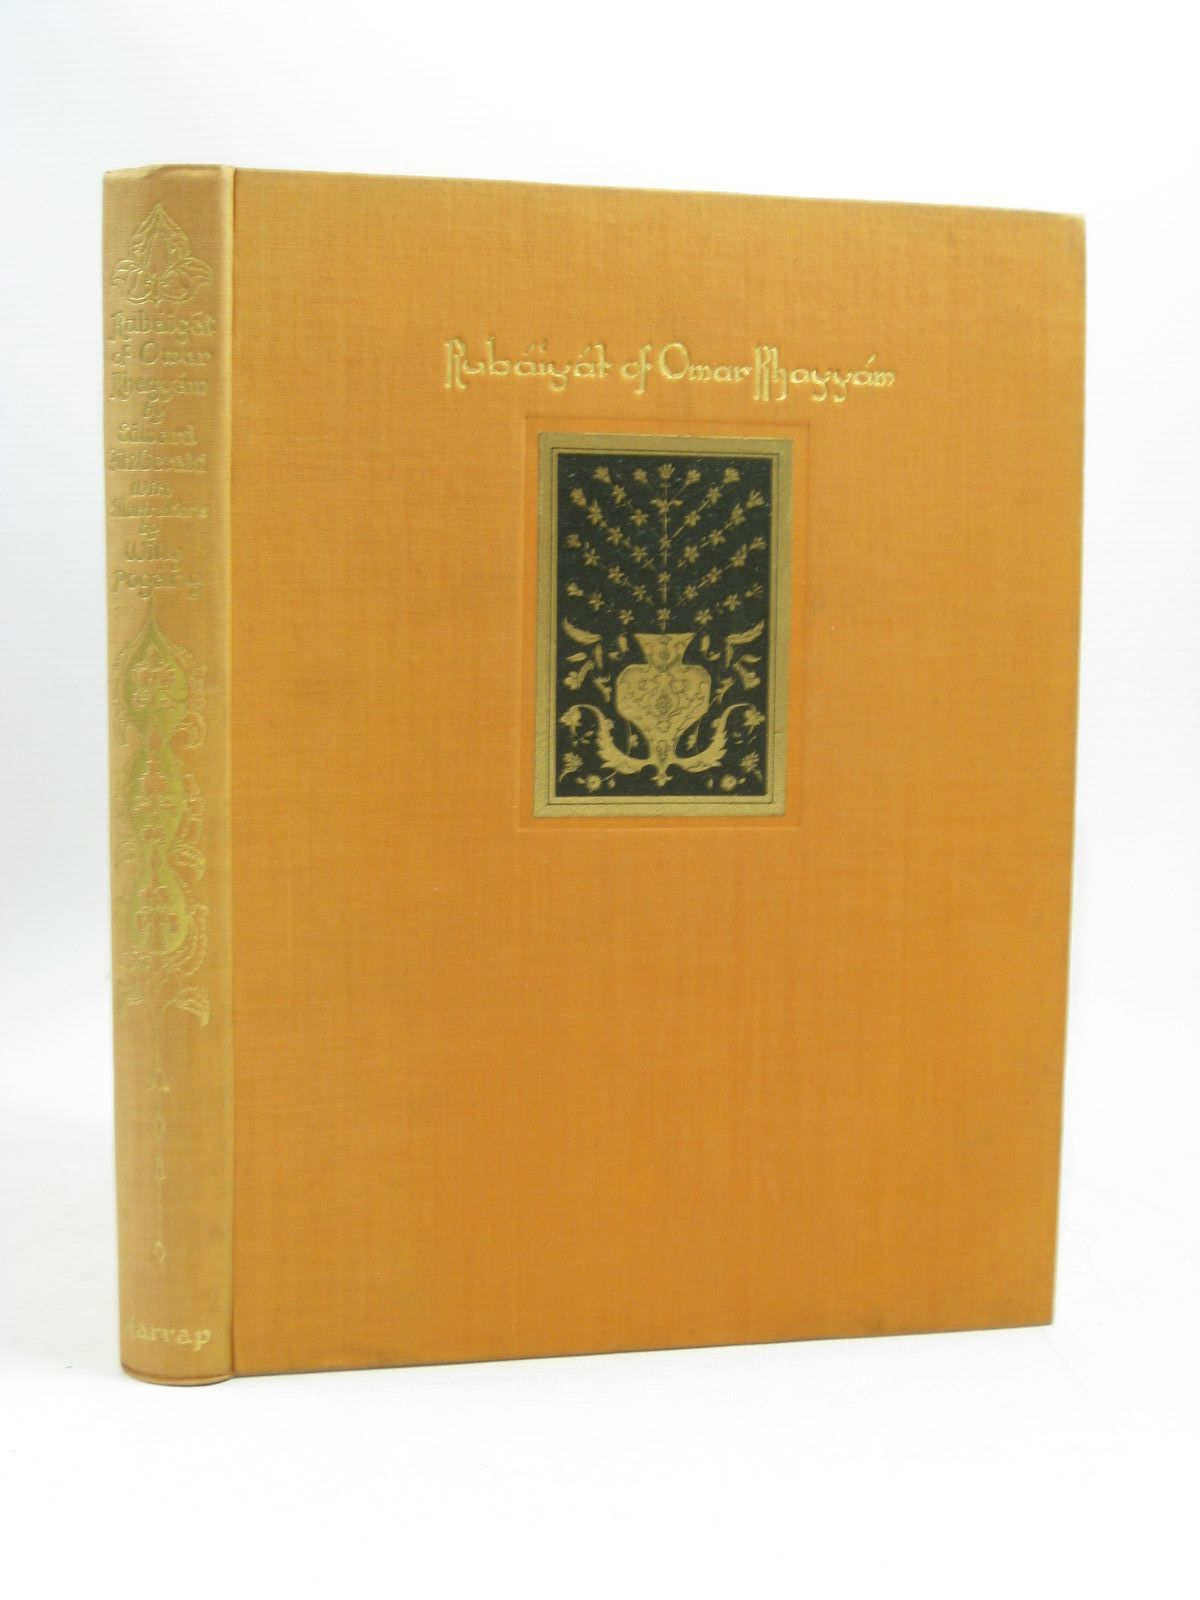 Photo of RUBAIYAT OF OMAR KHAYYAM written by Fitzgerald, Edward illustrated by Pogany, Willy published by George G. Harrap & Co. Ltd. (STOCK CODE: 1403975)  for sale by Stella & Rose's Books